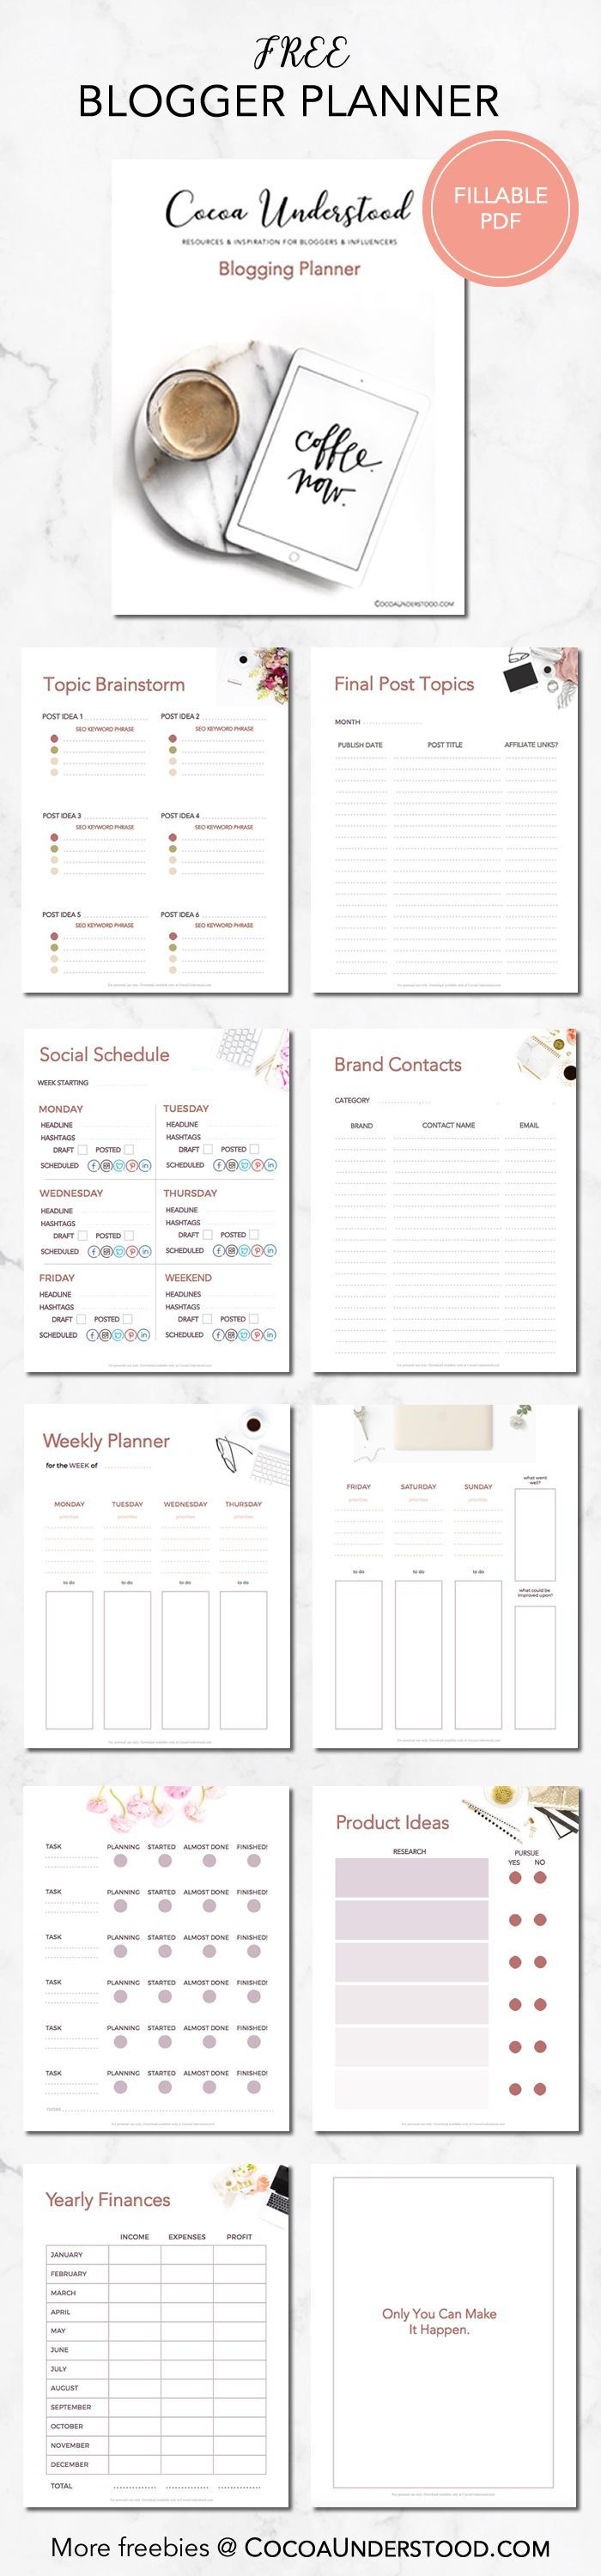 These tips will help you develop, create, write and schedule your blog posts. Also, grab your FREE blogging planner (printable or fillable pdf) here: http://www.cocoaunderstood.com/how-to-plan-blog-posts